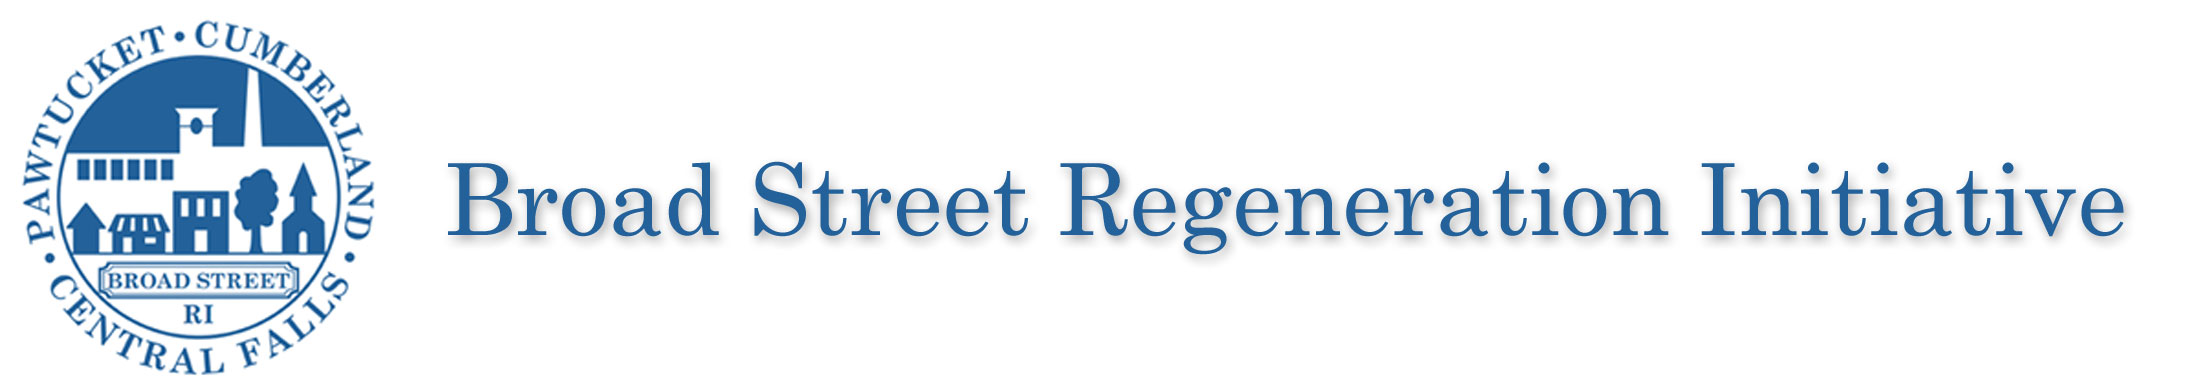 Broad Street Regeneration Initiative Retina Logo